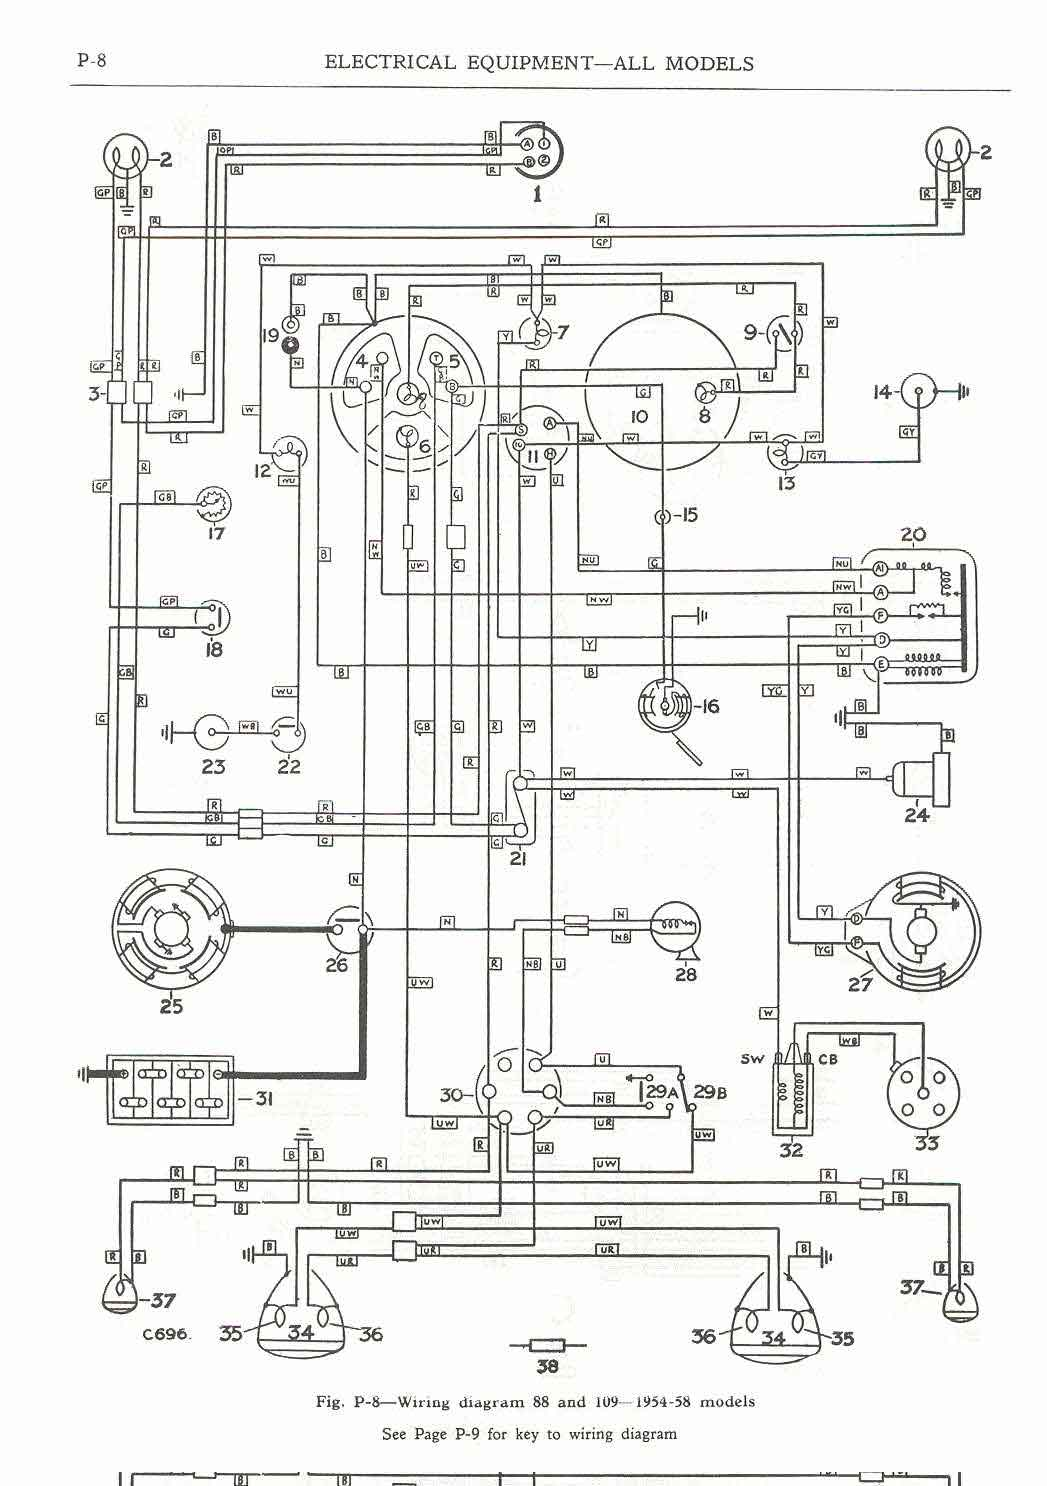 1957 land rover s1 wiring diagram